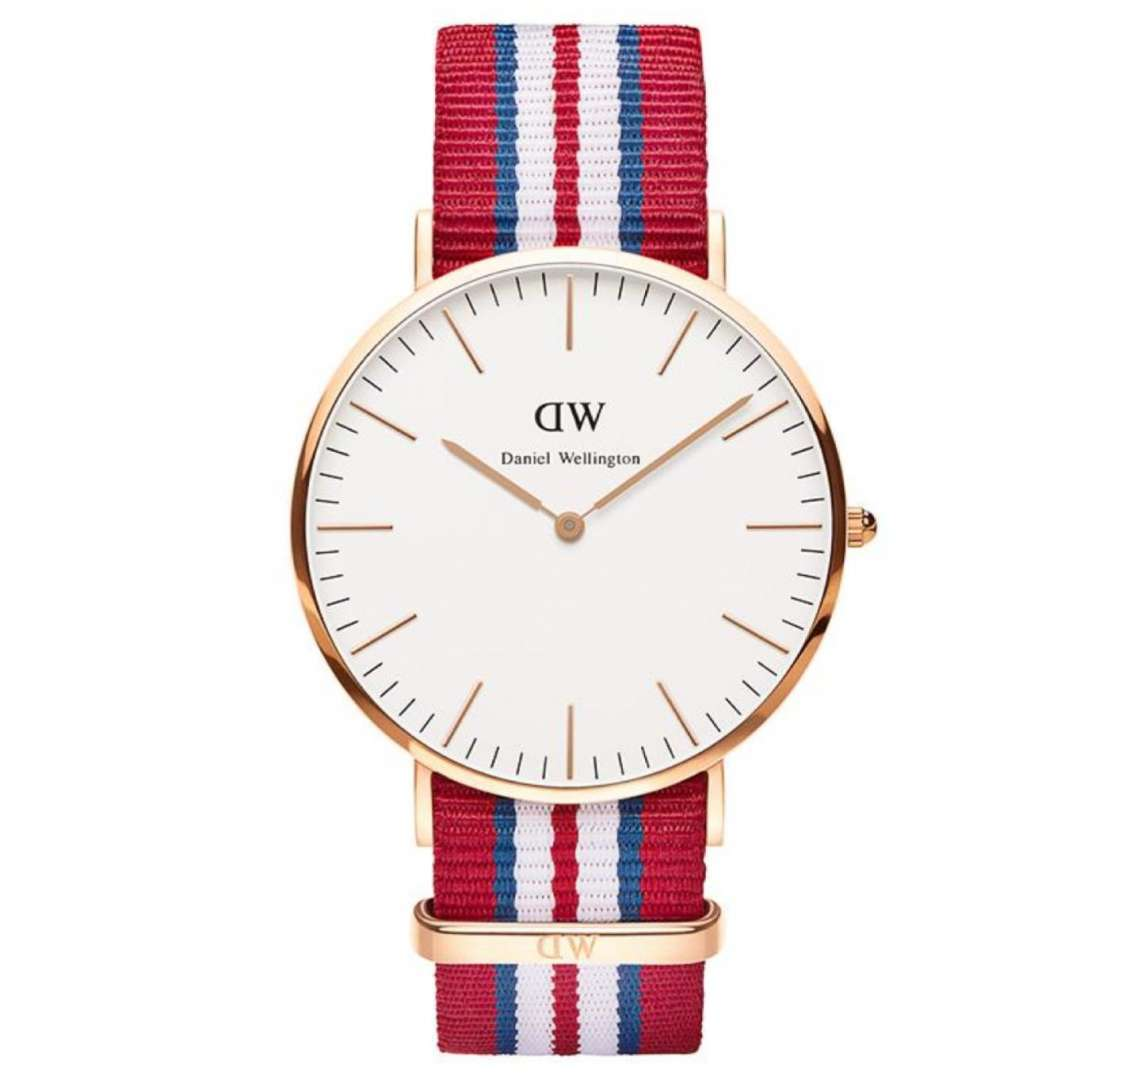 שעון יד אנלוגי daniel wellington 0112DW דניאל וולינגטון